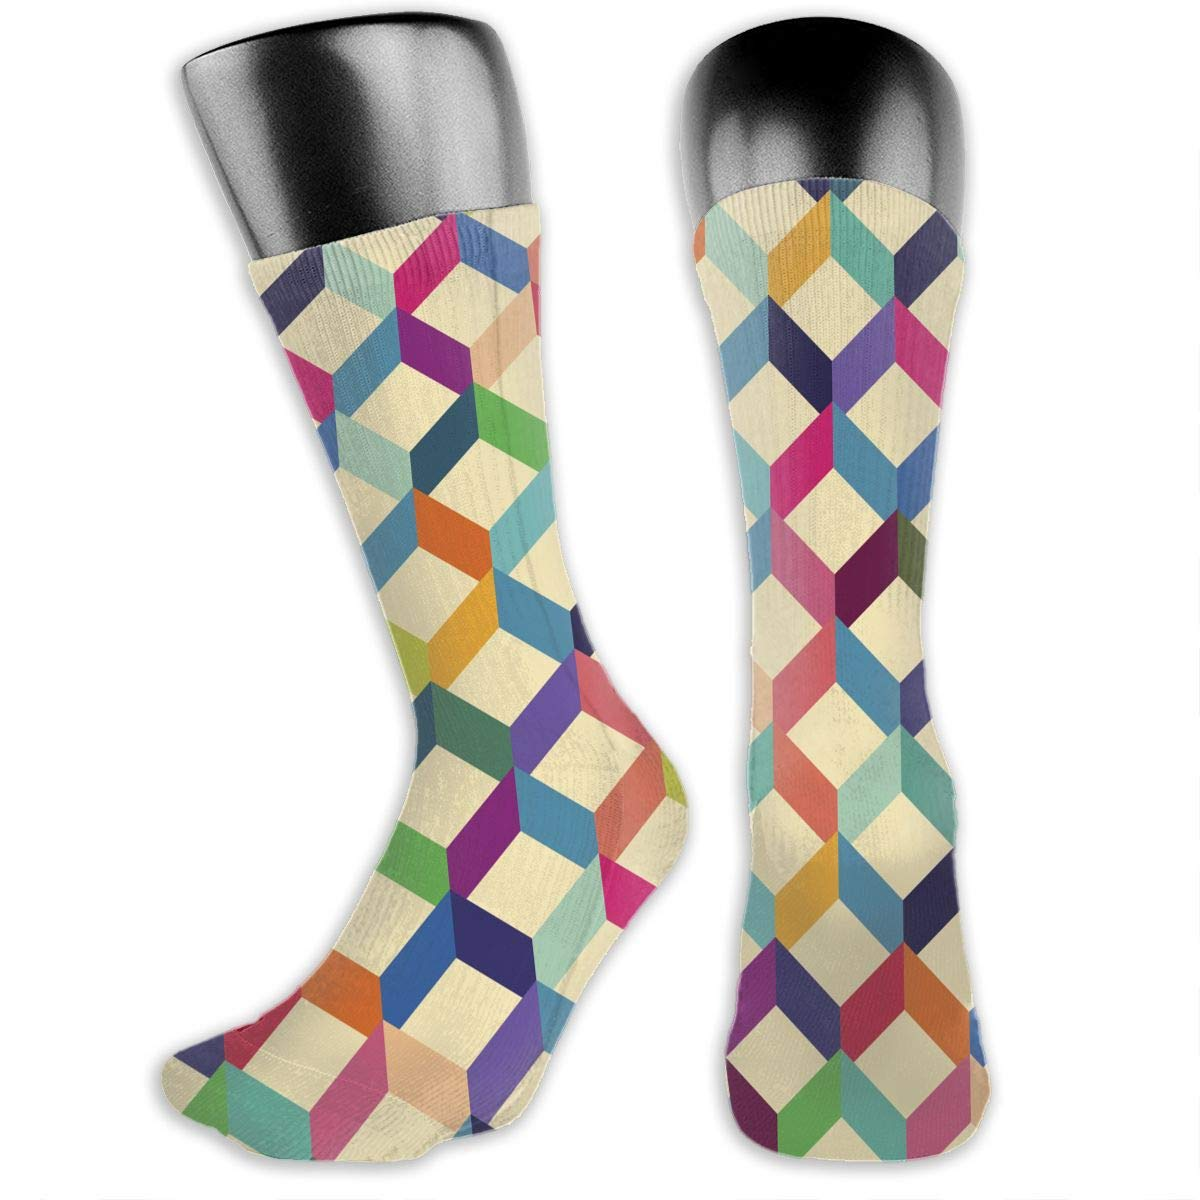 OLGCZM Colorful Geometric Pattern Men Womens Thin High Ankle Casual Socks Fit Outdoor Hiking Trail